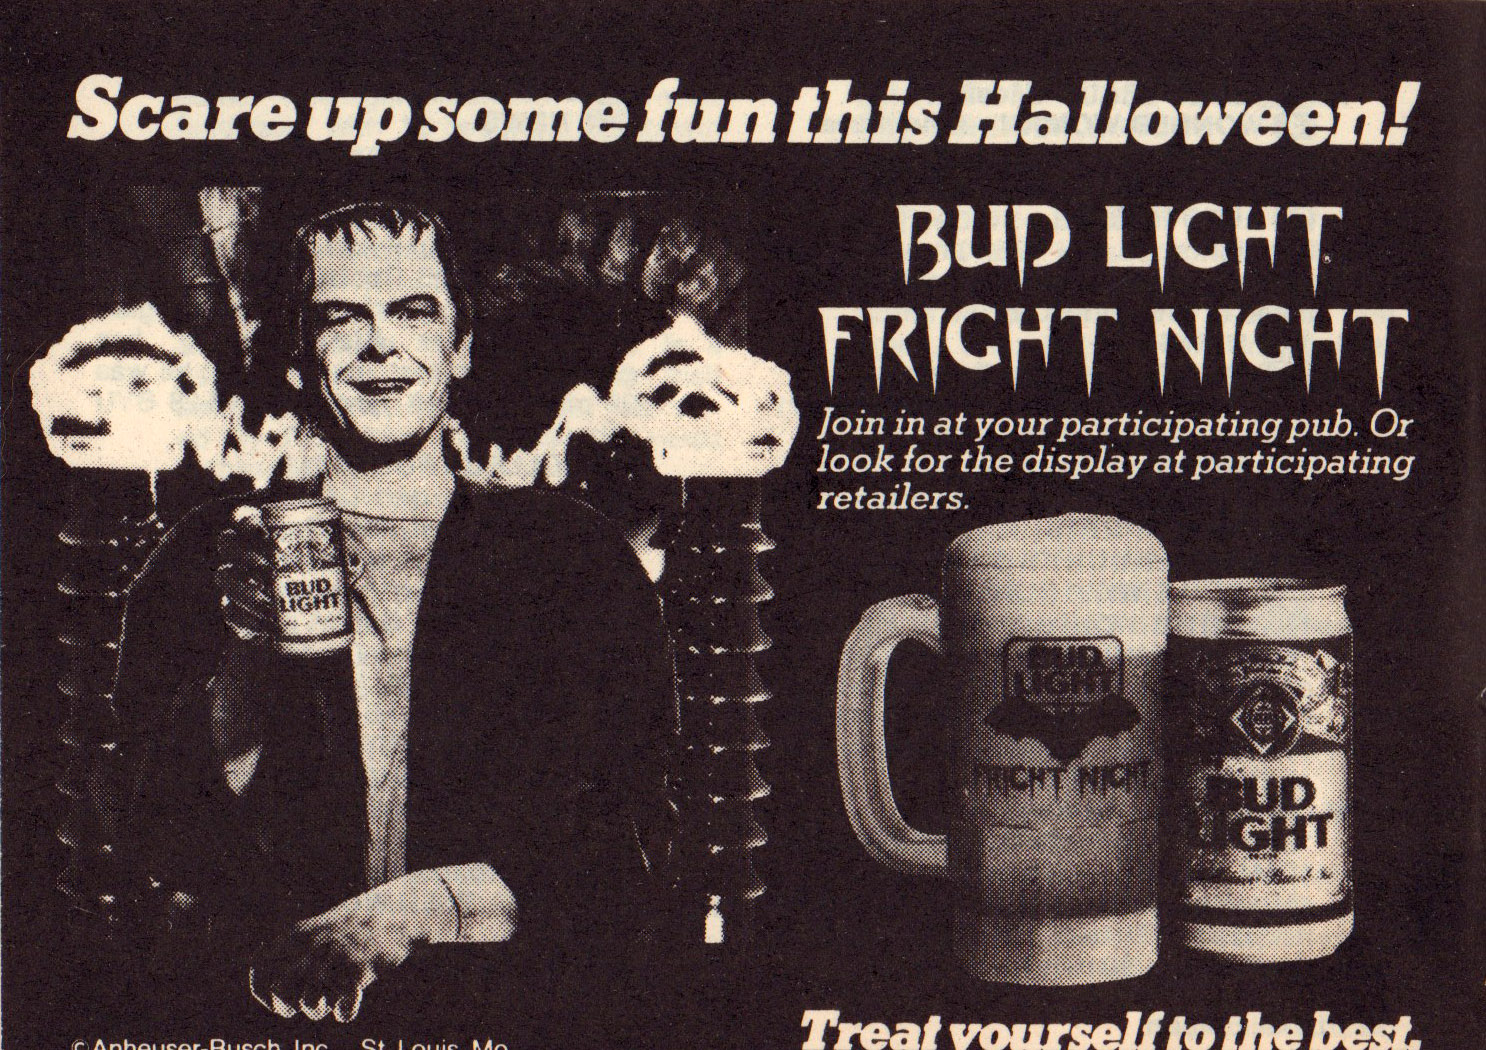 TV Guide Oct 20_26 1984 Bud Light advert